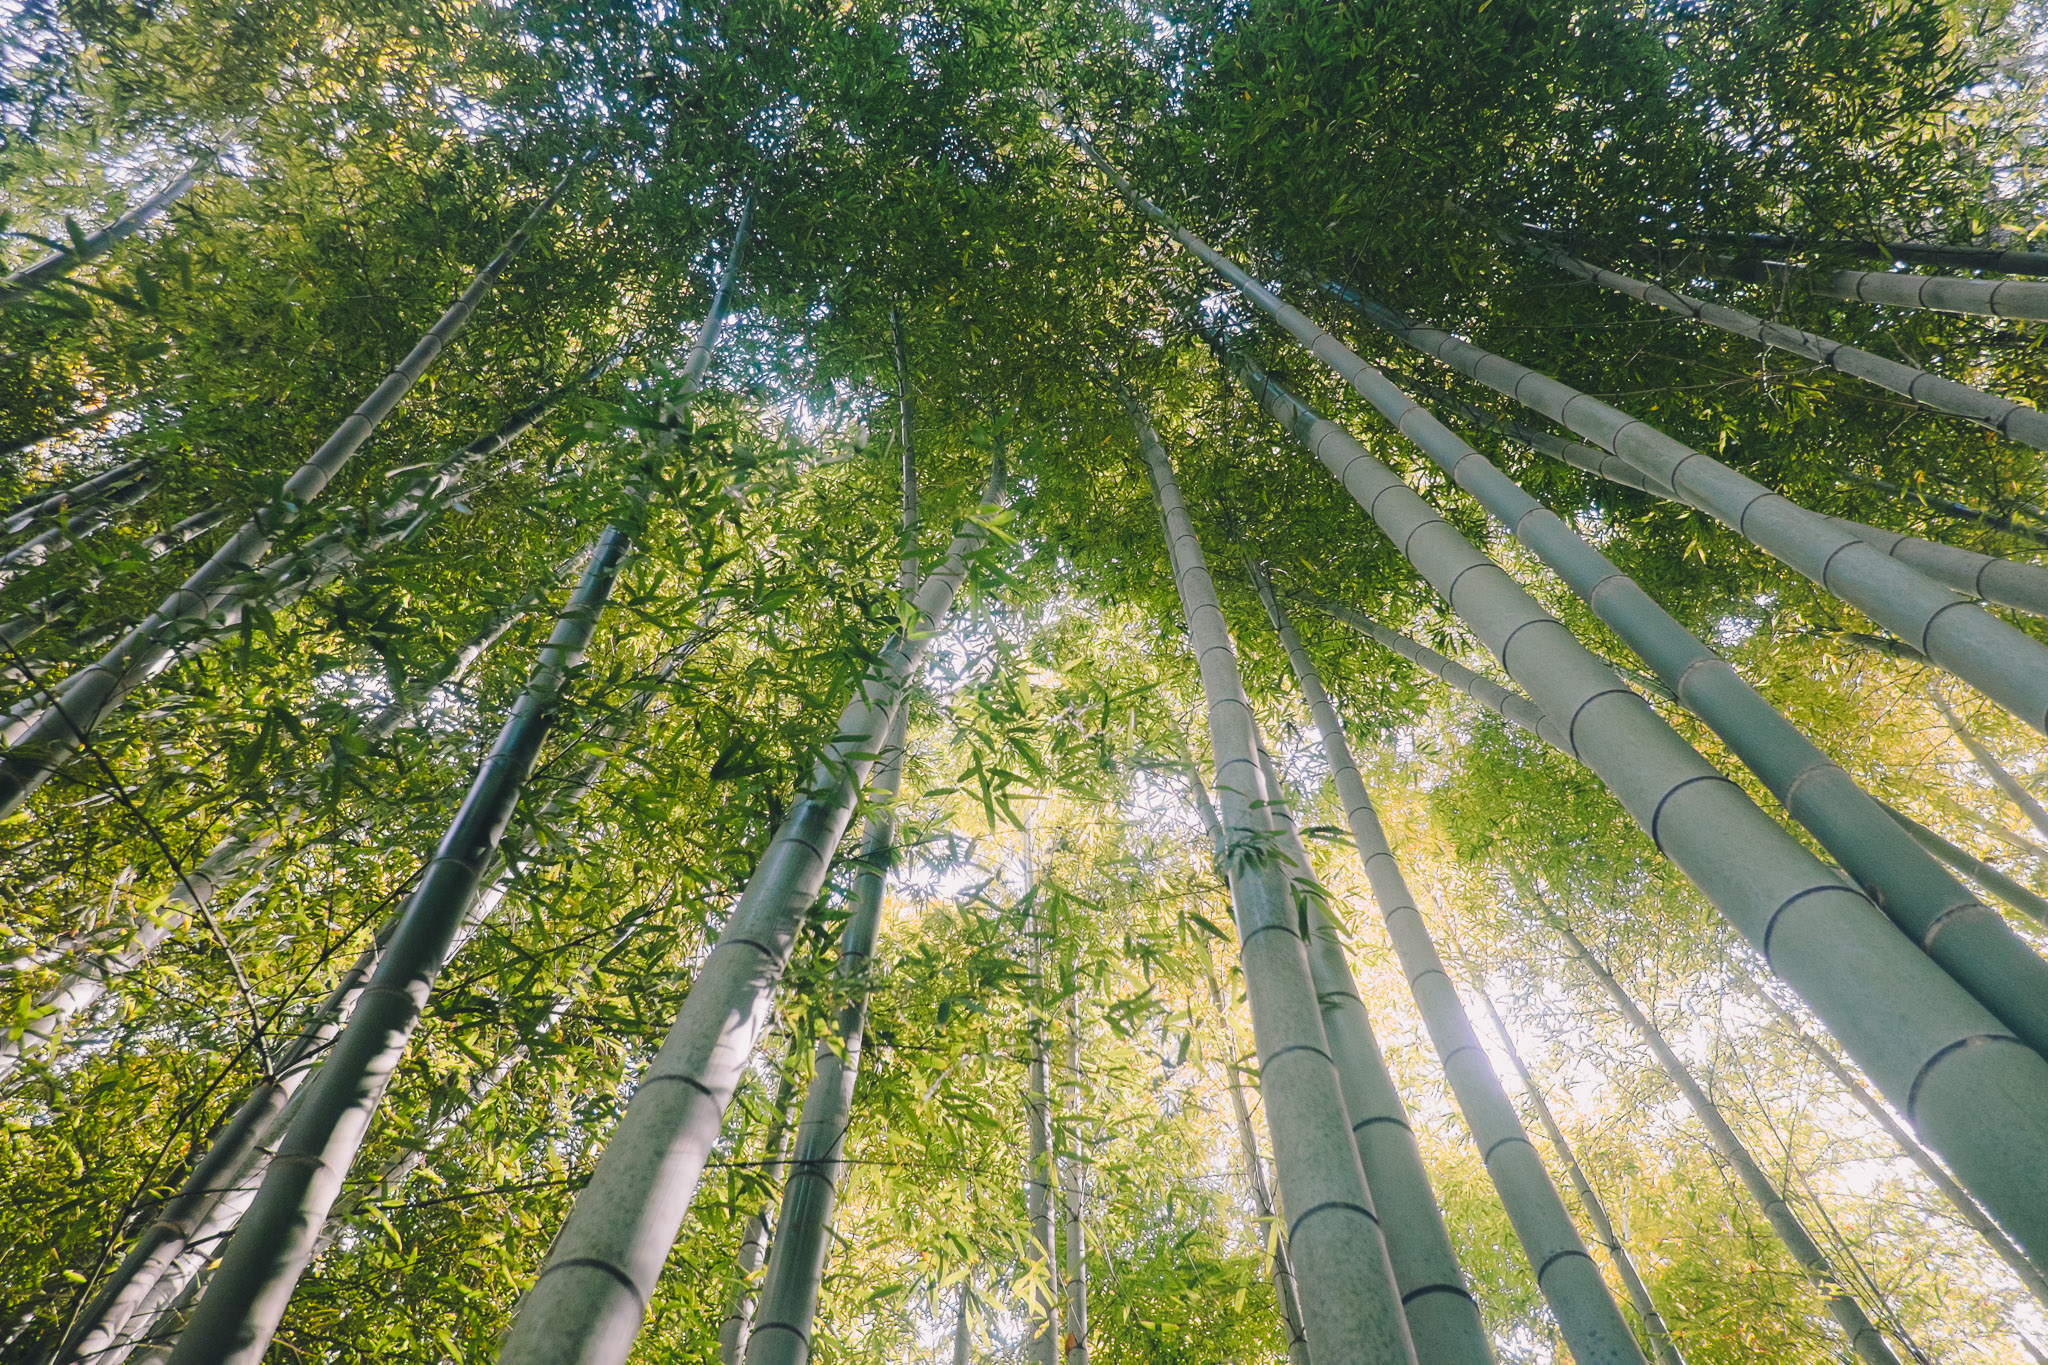 japan-kyoto-bamboo-forest.jpg